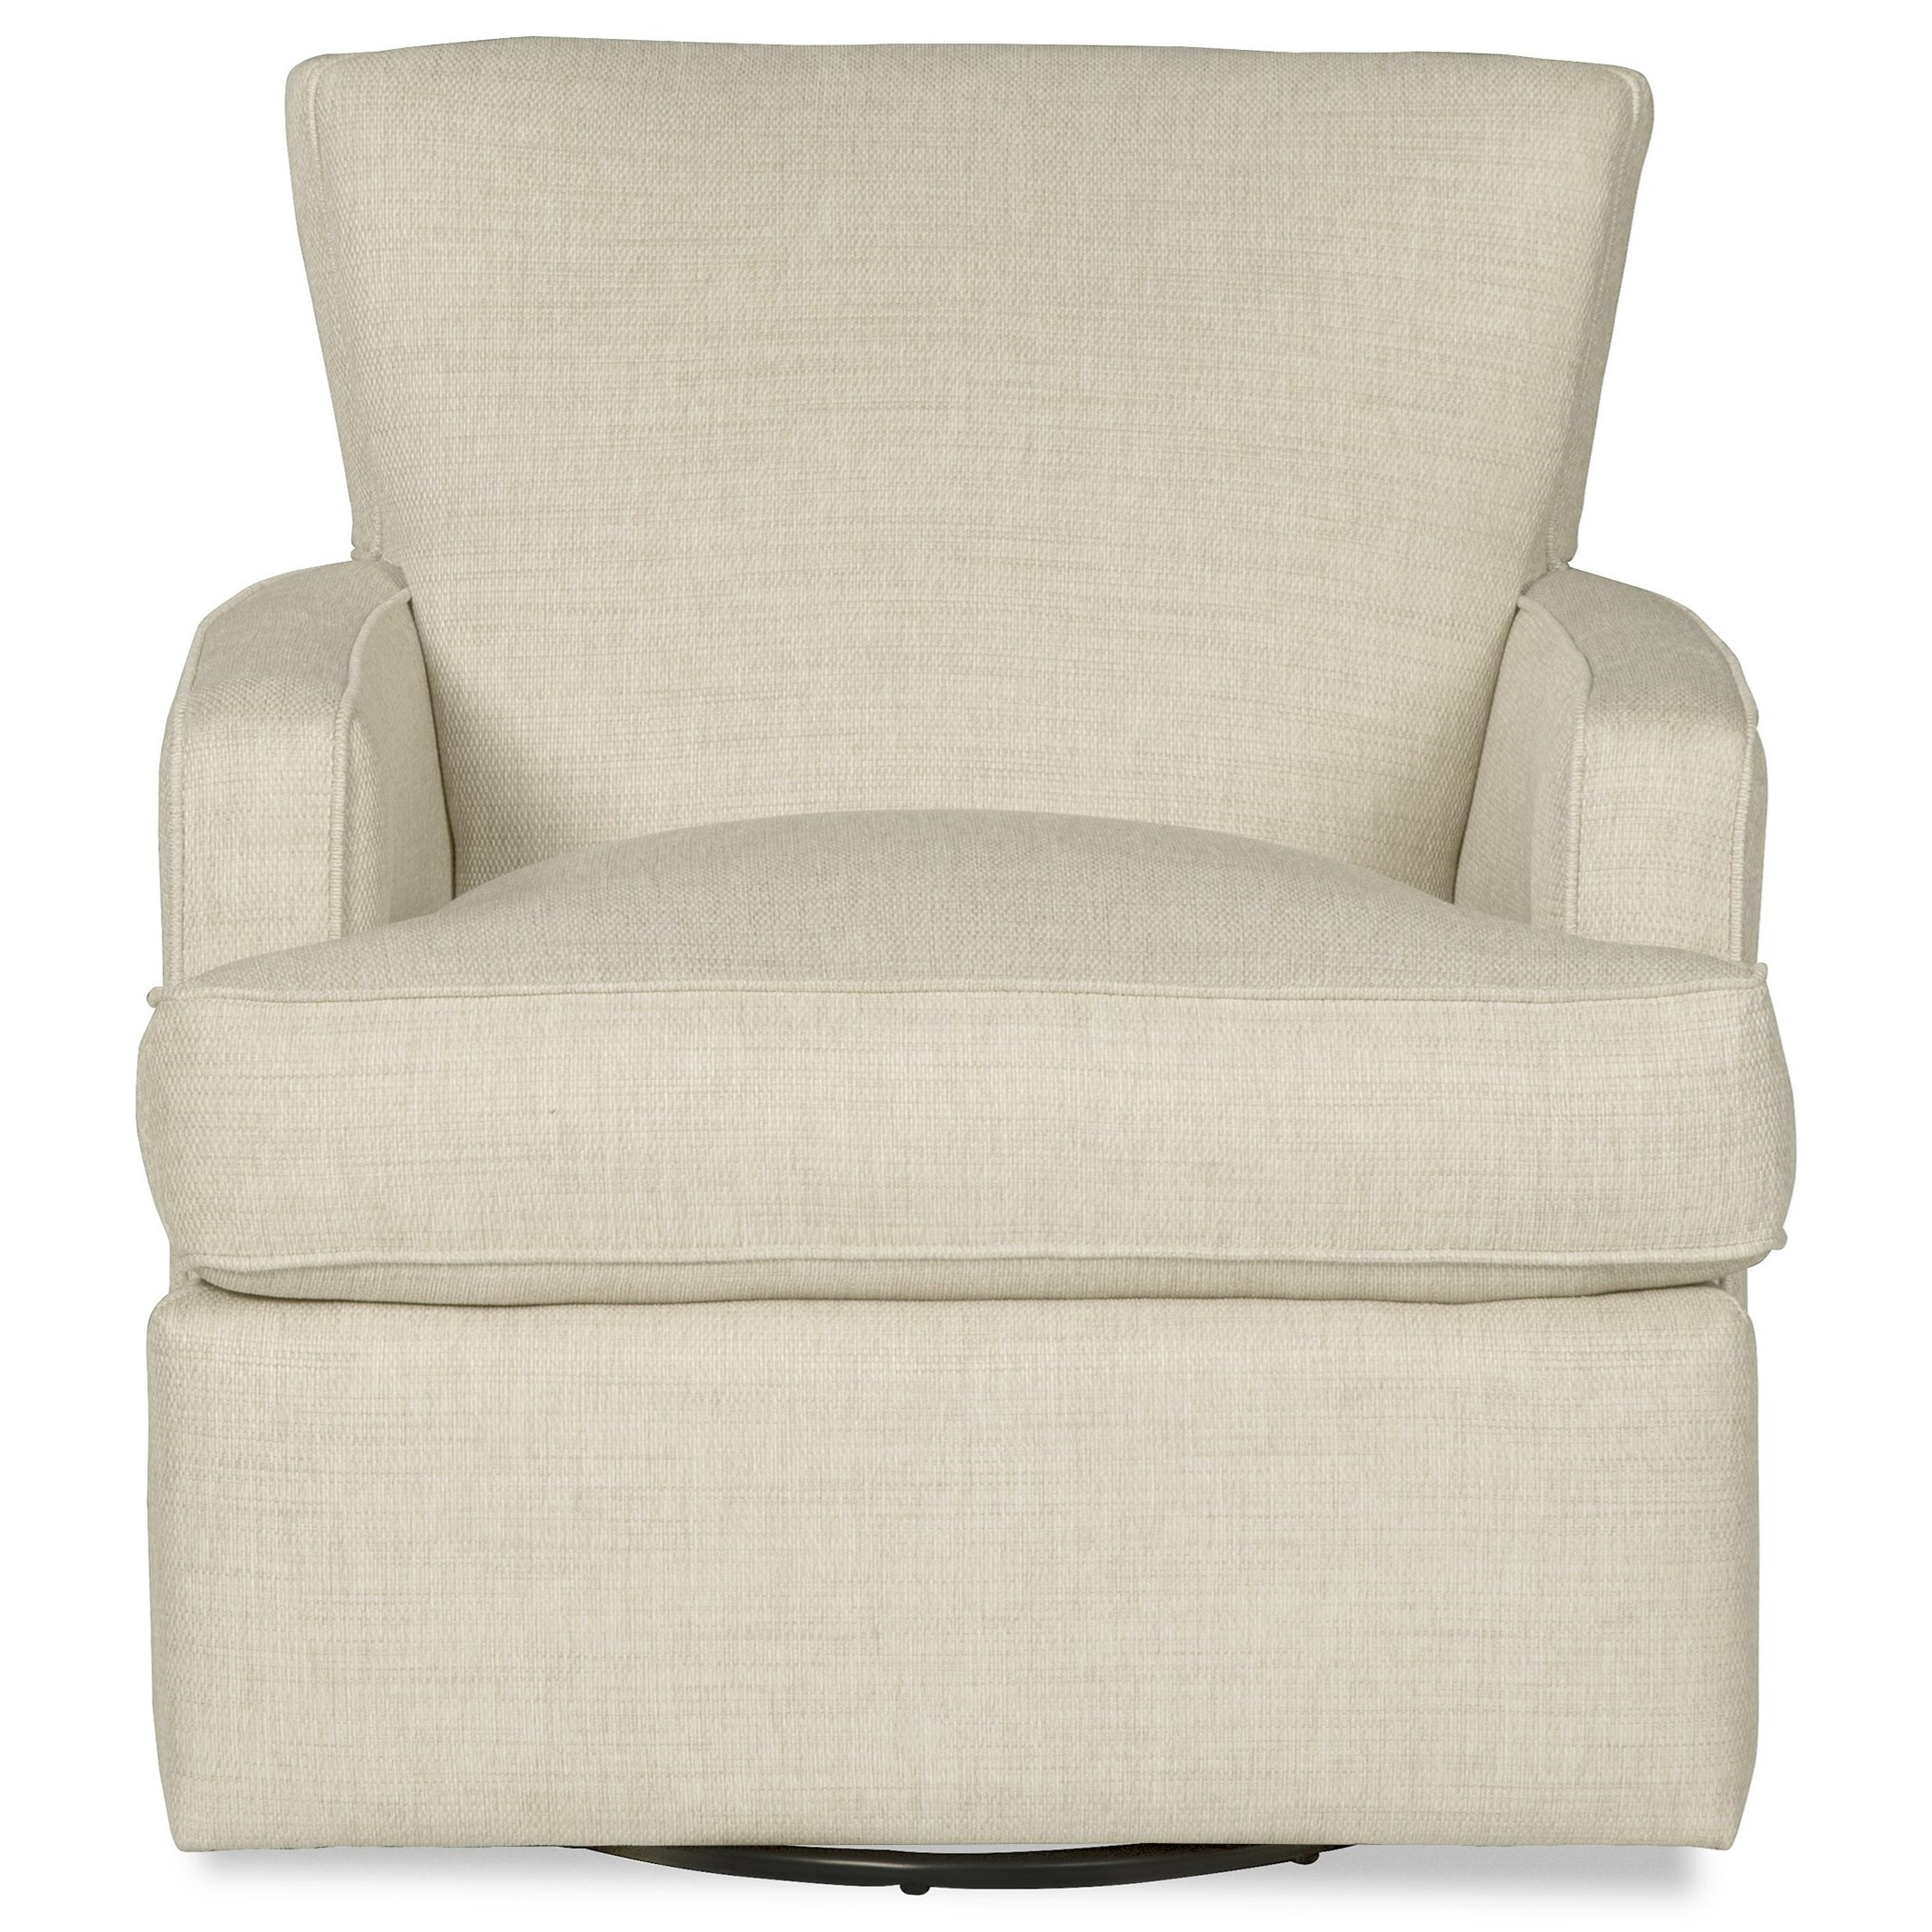 003510 Swivel Chair by Craftmaster at Bullard Furniture